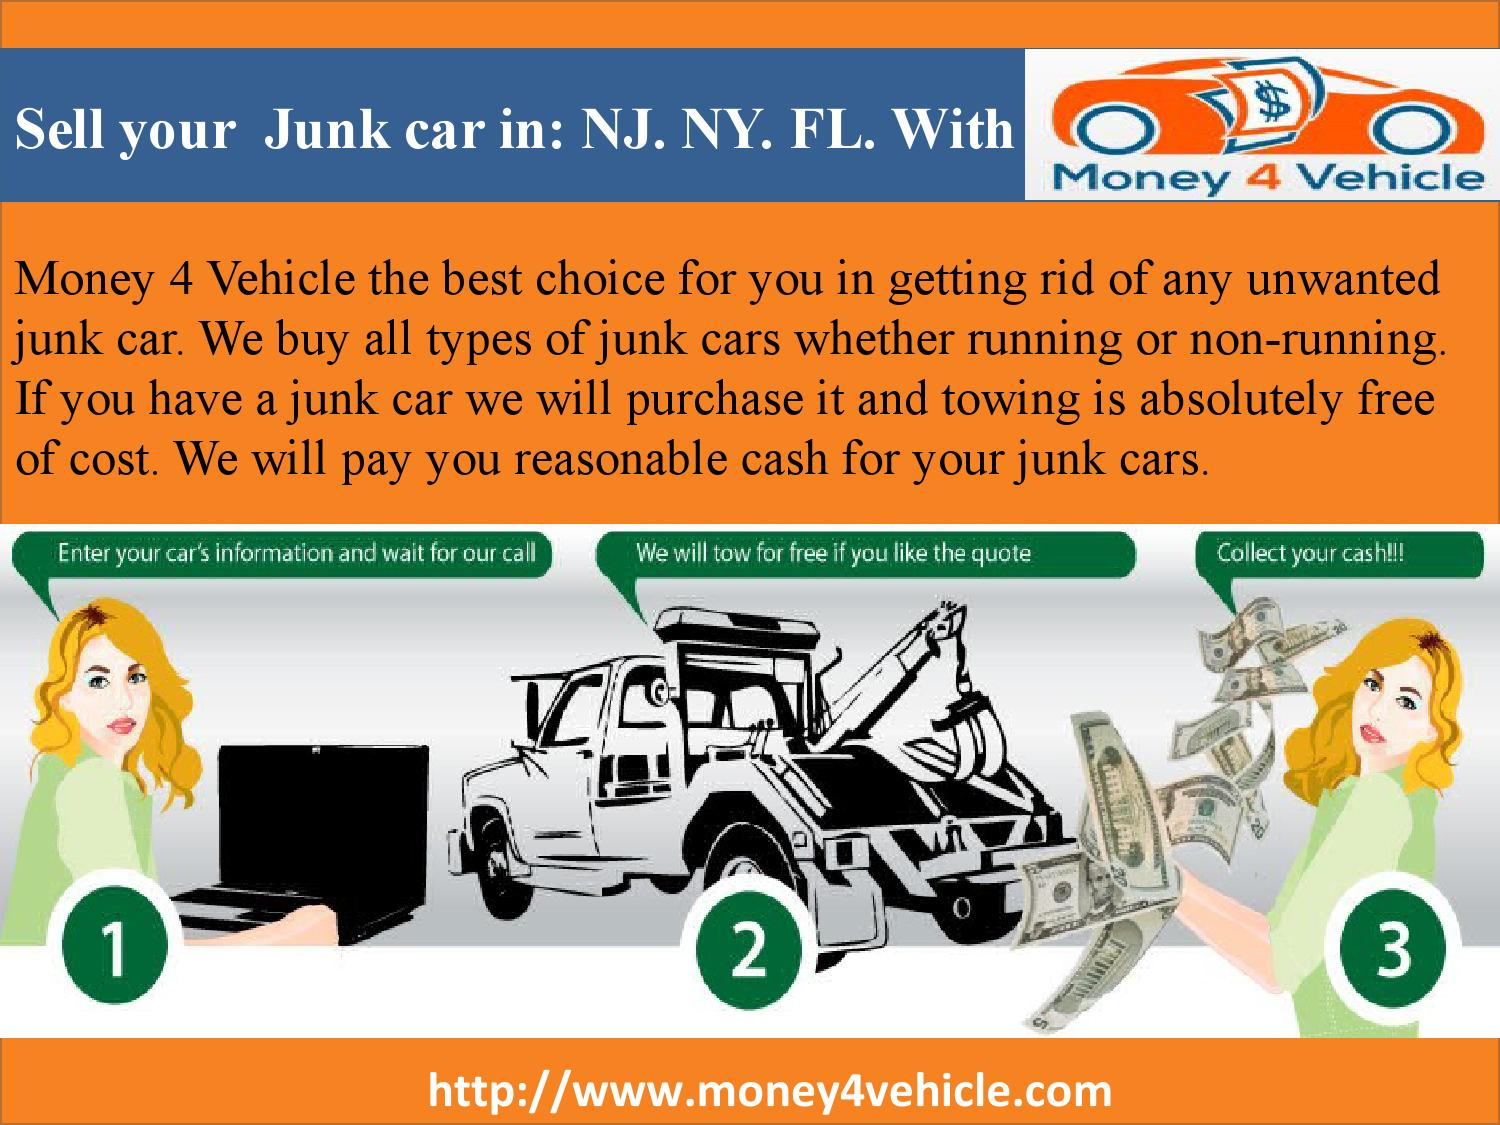 Sell your junk car by money4vehicle01 - issuu